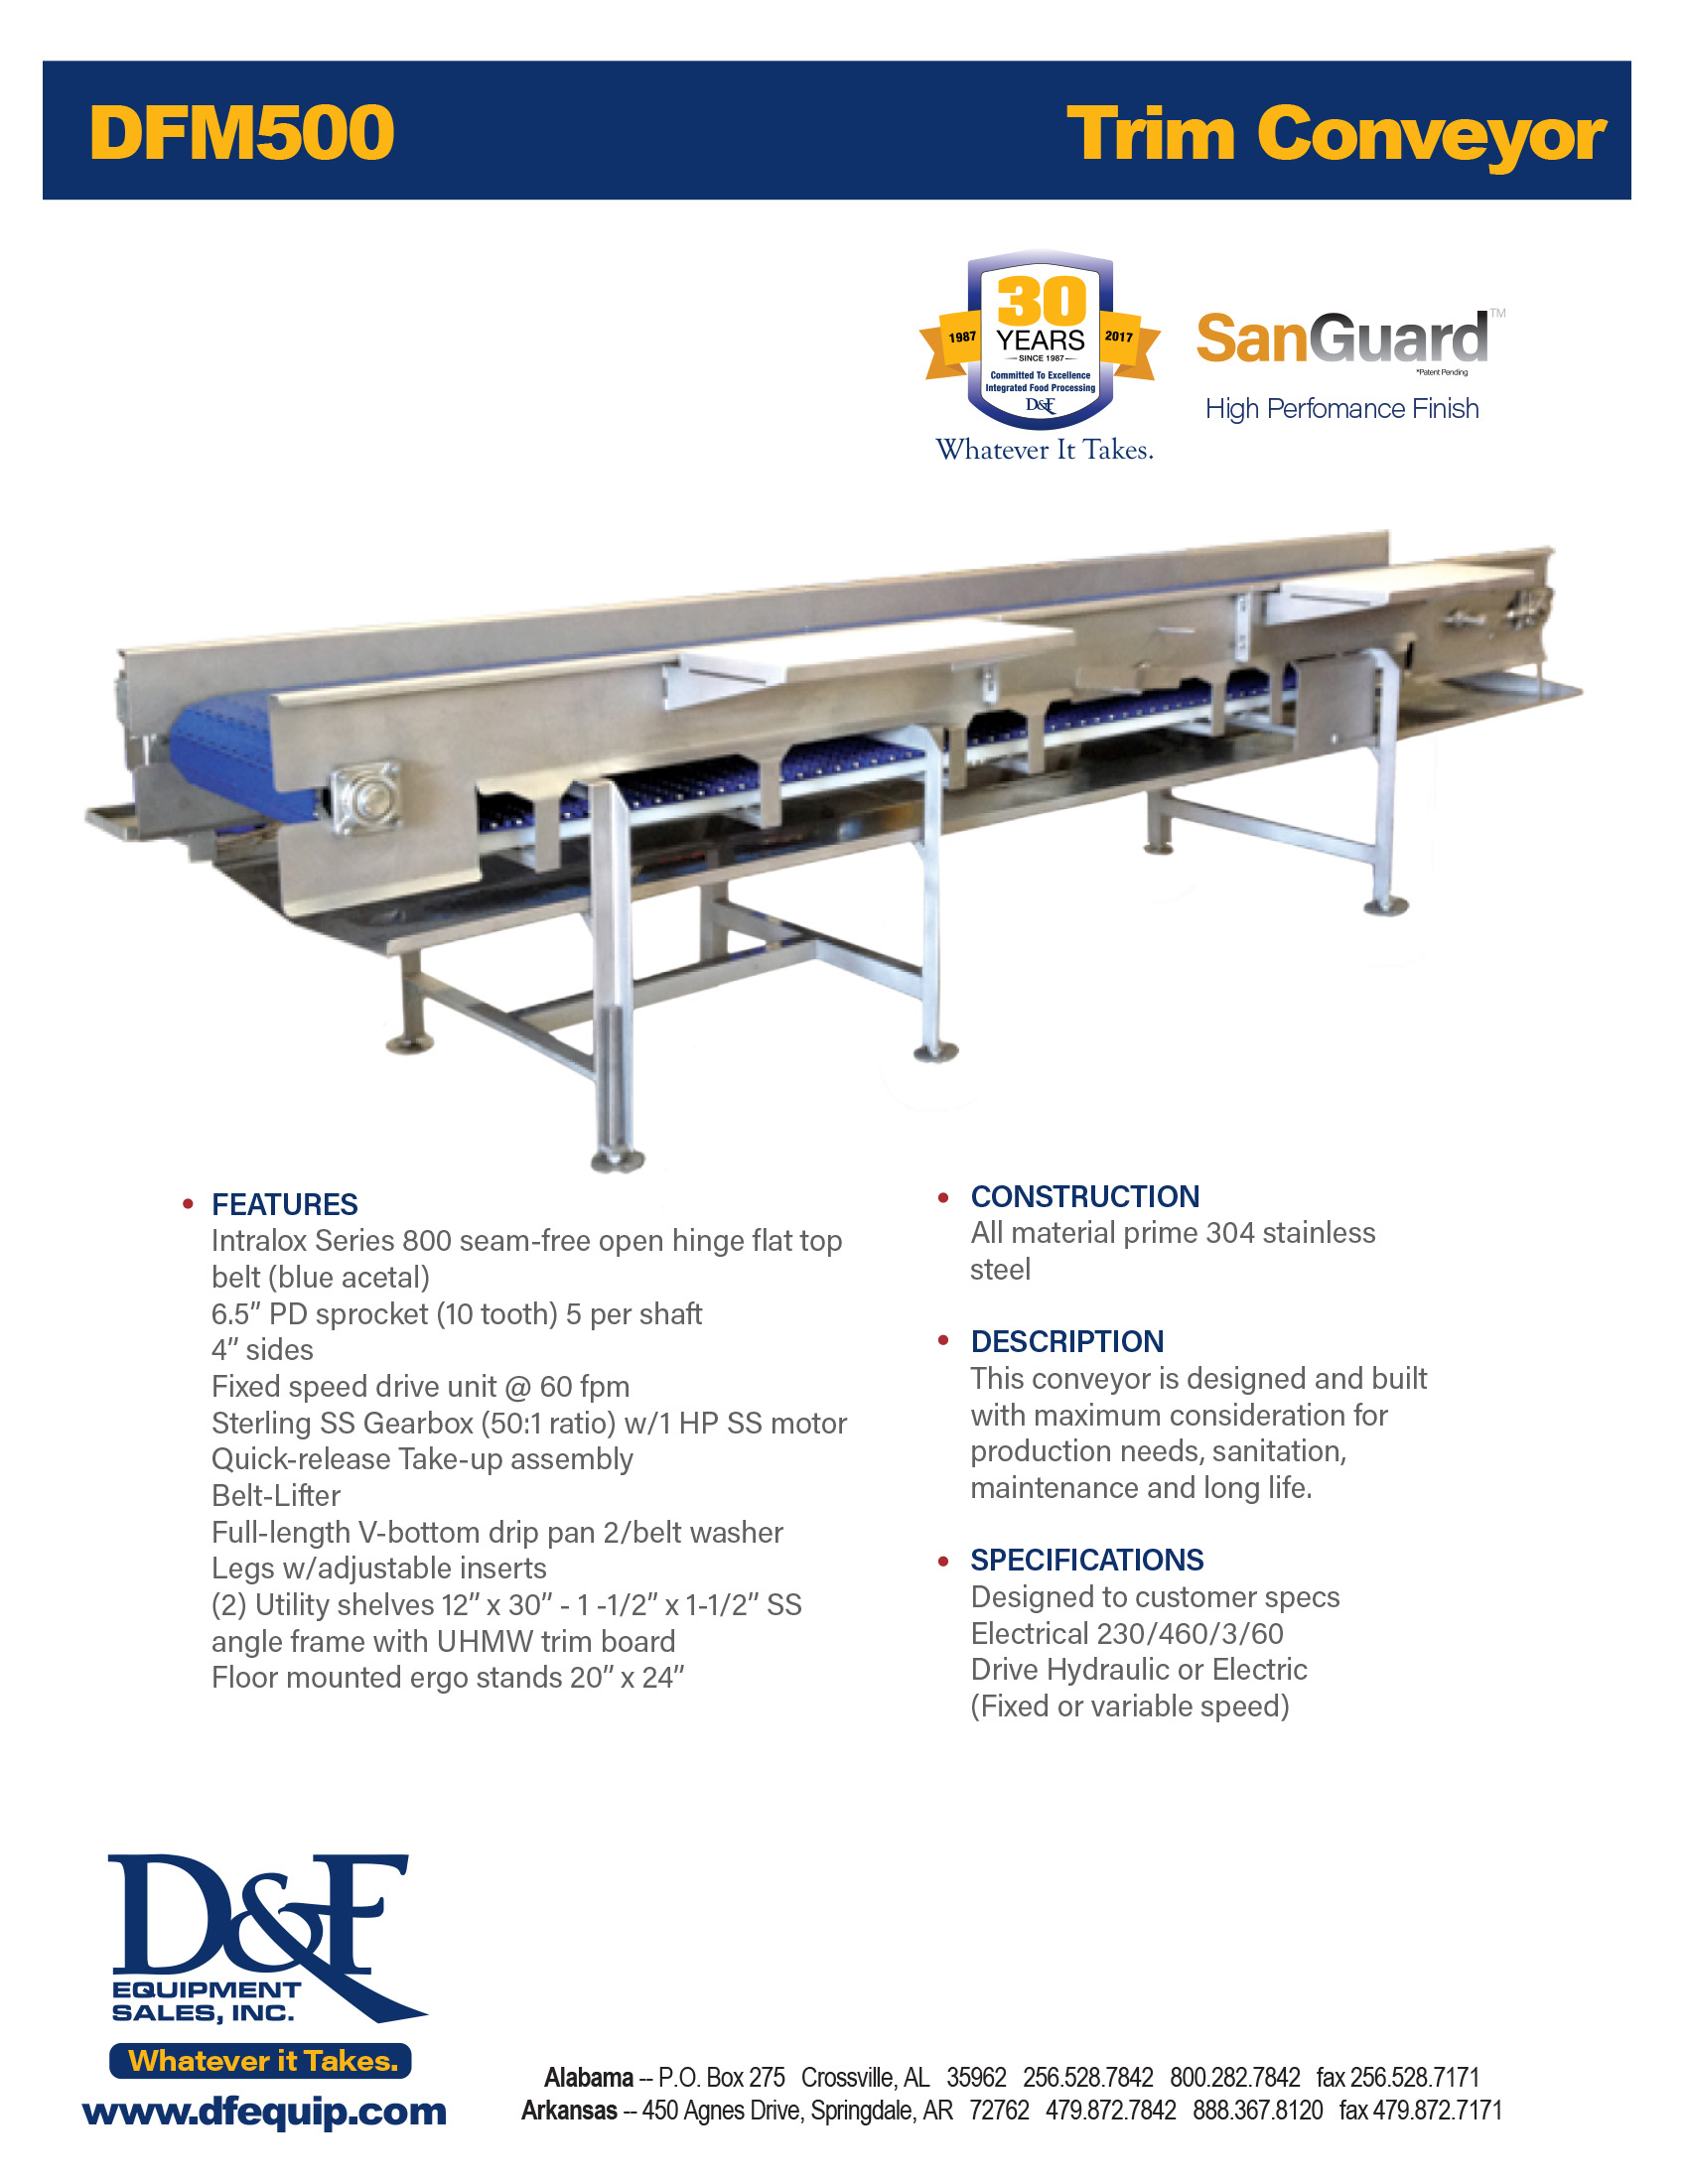 DFM500-TrimConveyor2017.jpg